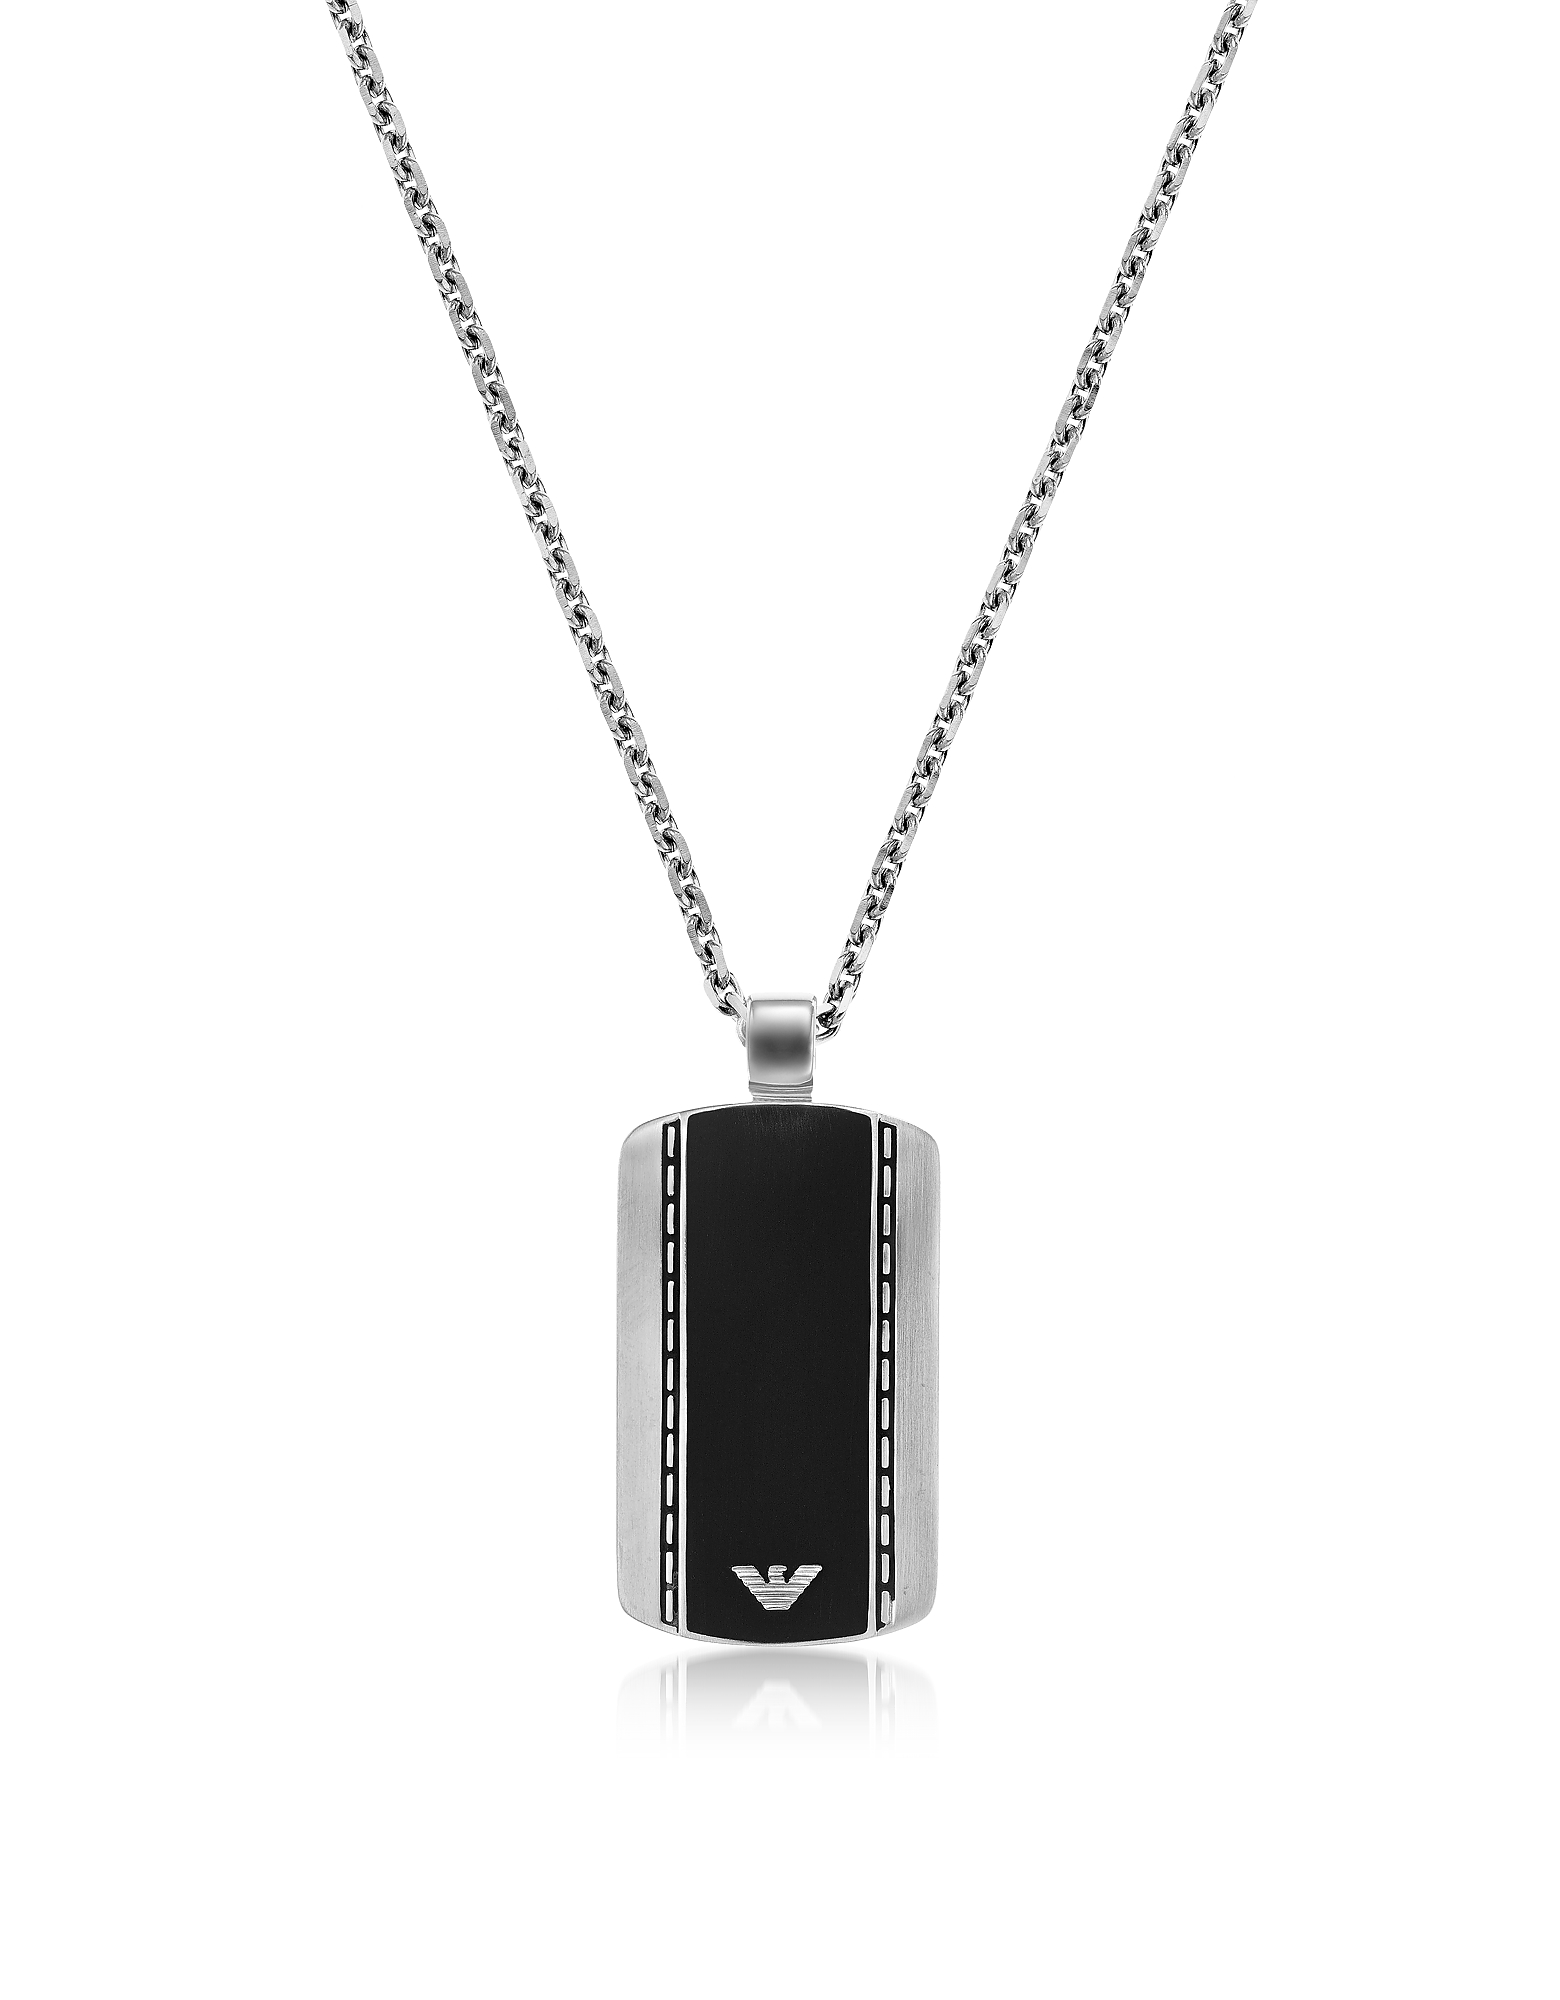 Men's Signature Dog Tag Necklace